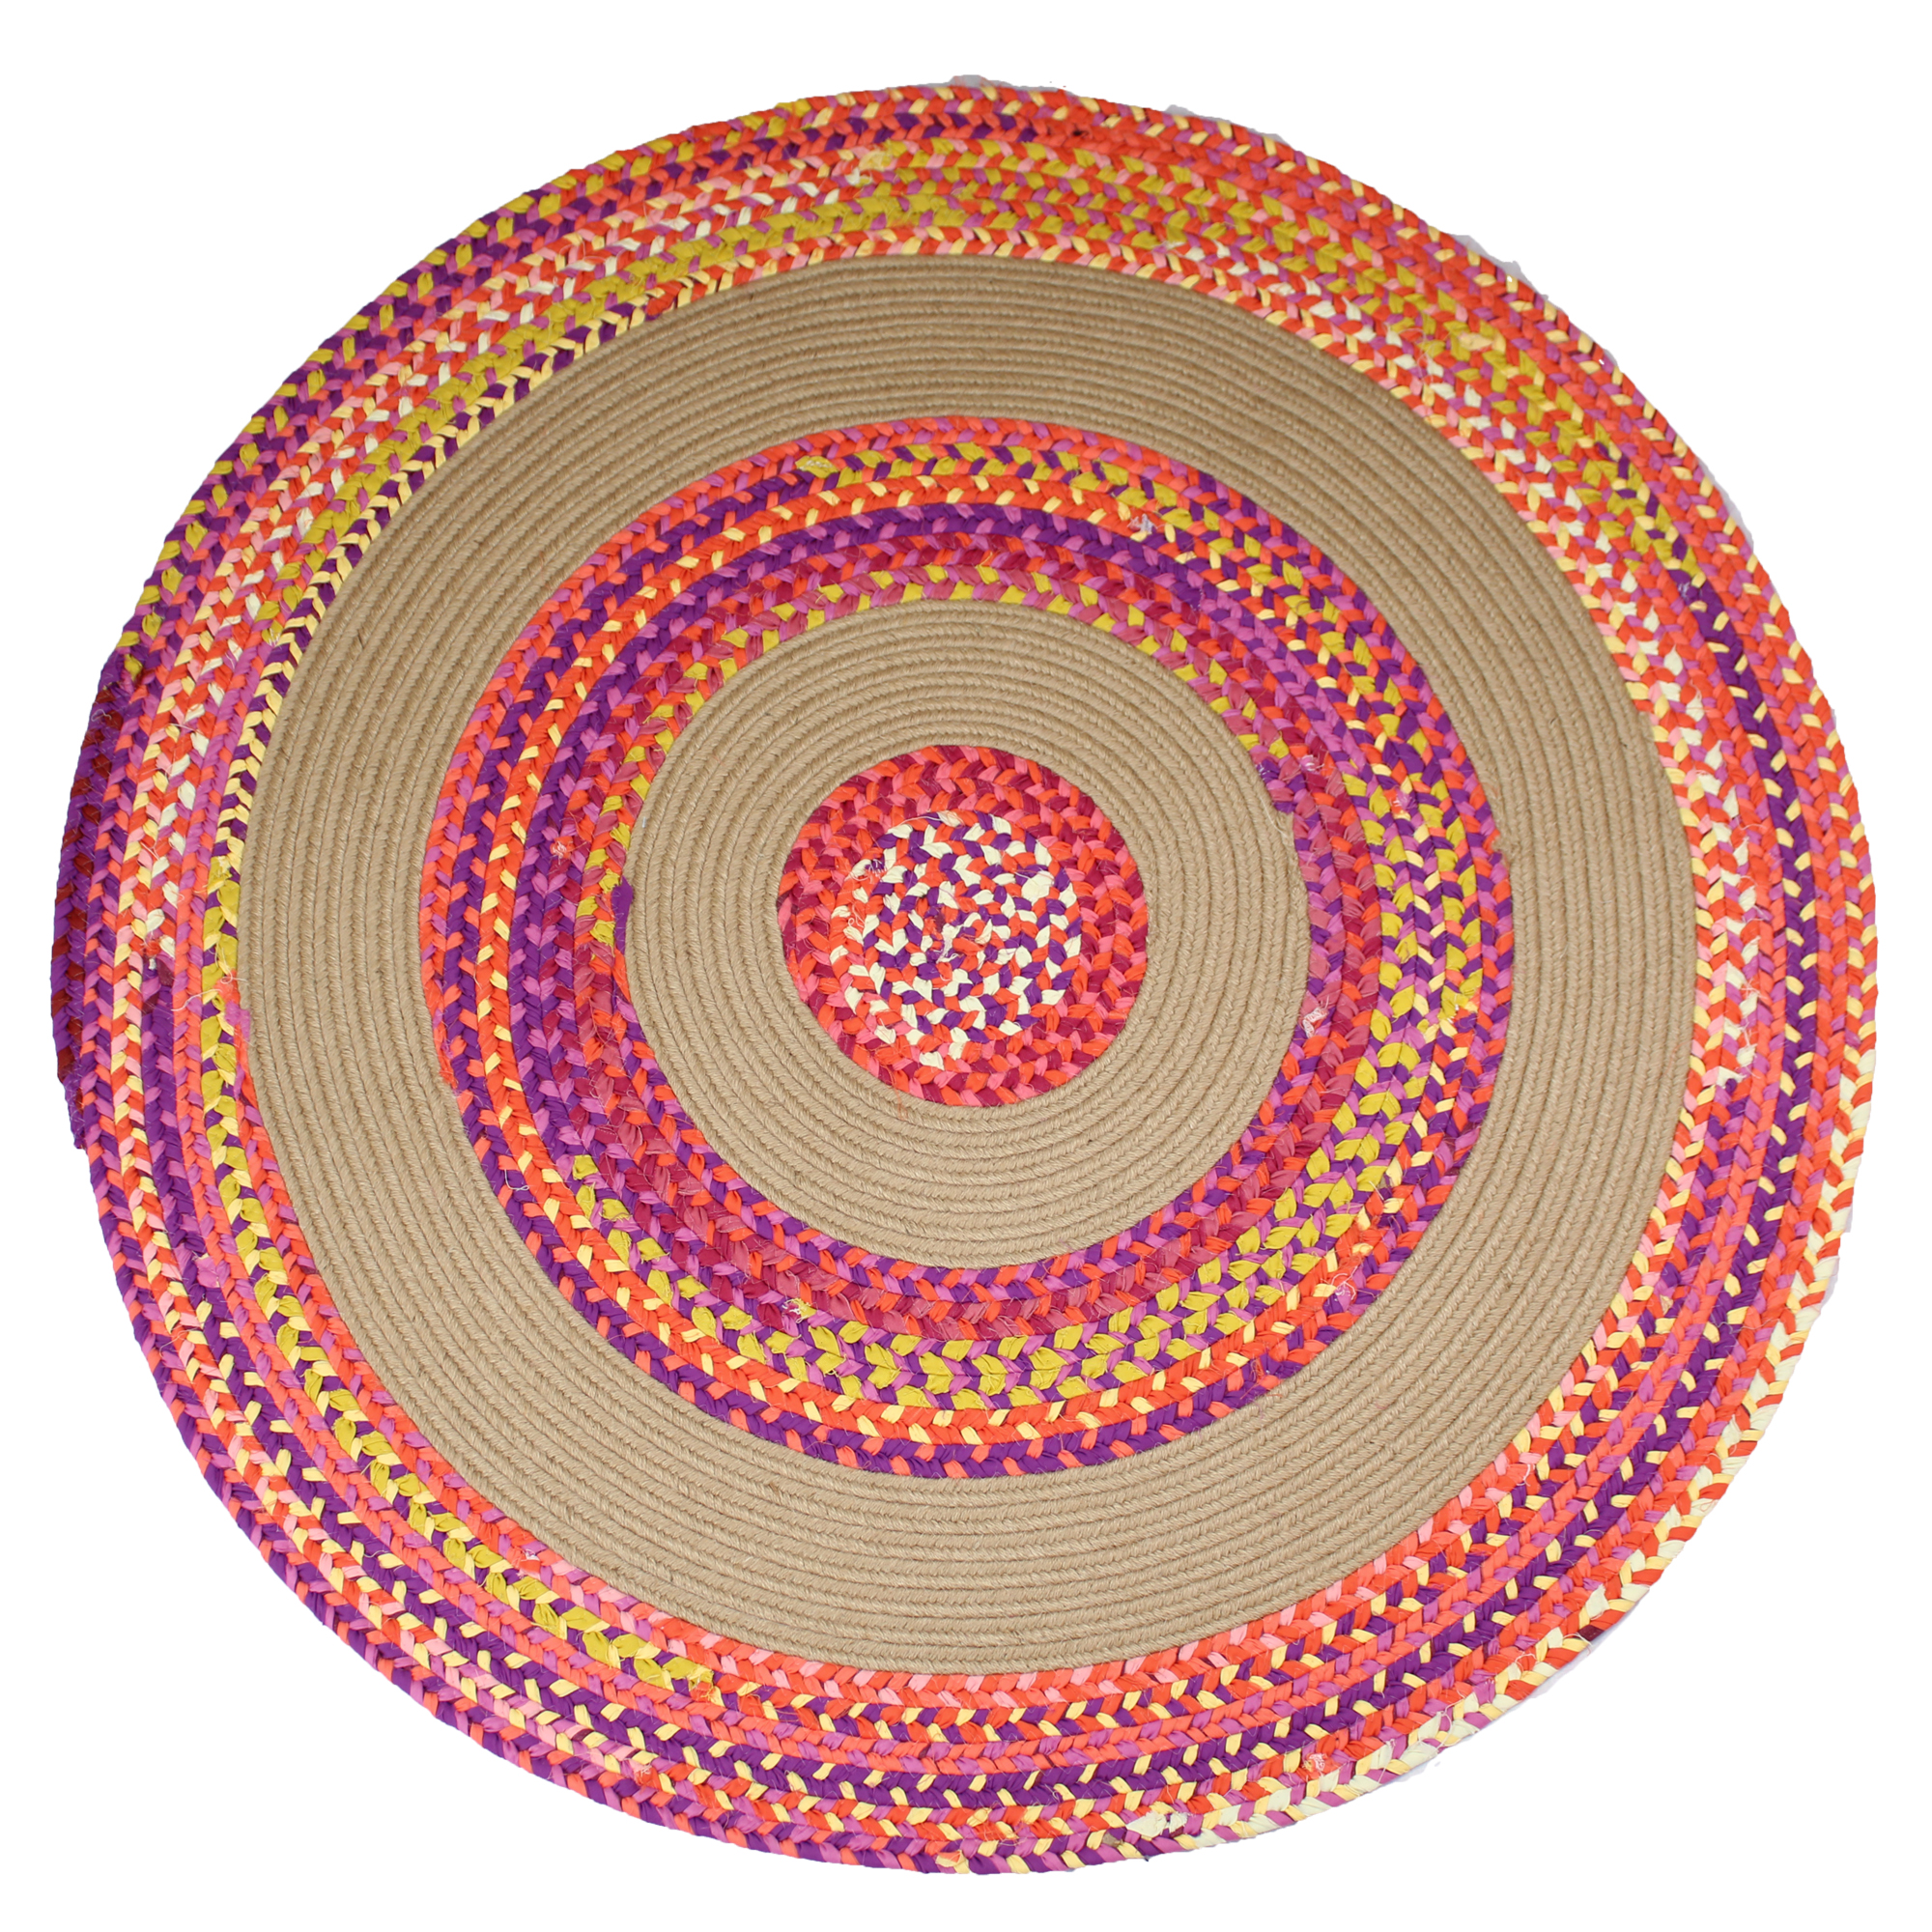 Us 51 92 20 Off Jute Cotton Multi Chindi Braid Rug Hand Woven Reversible Round Carpet Handmade Braided Cotton Round Area Rug For Living Room In